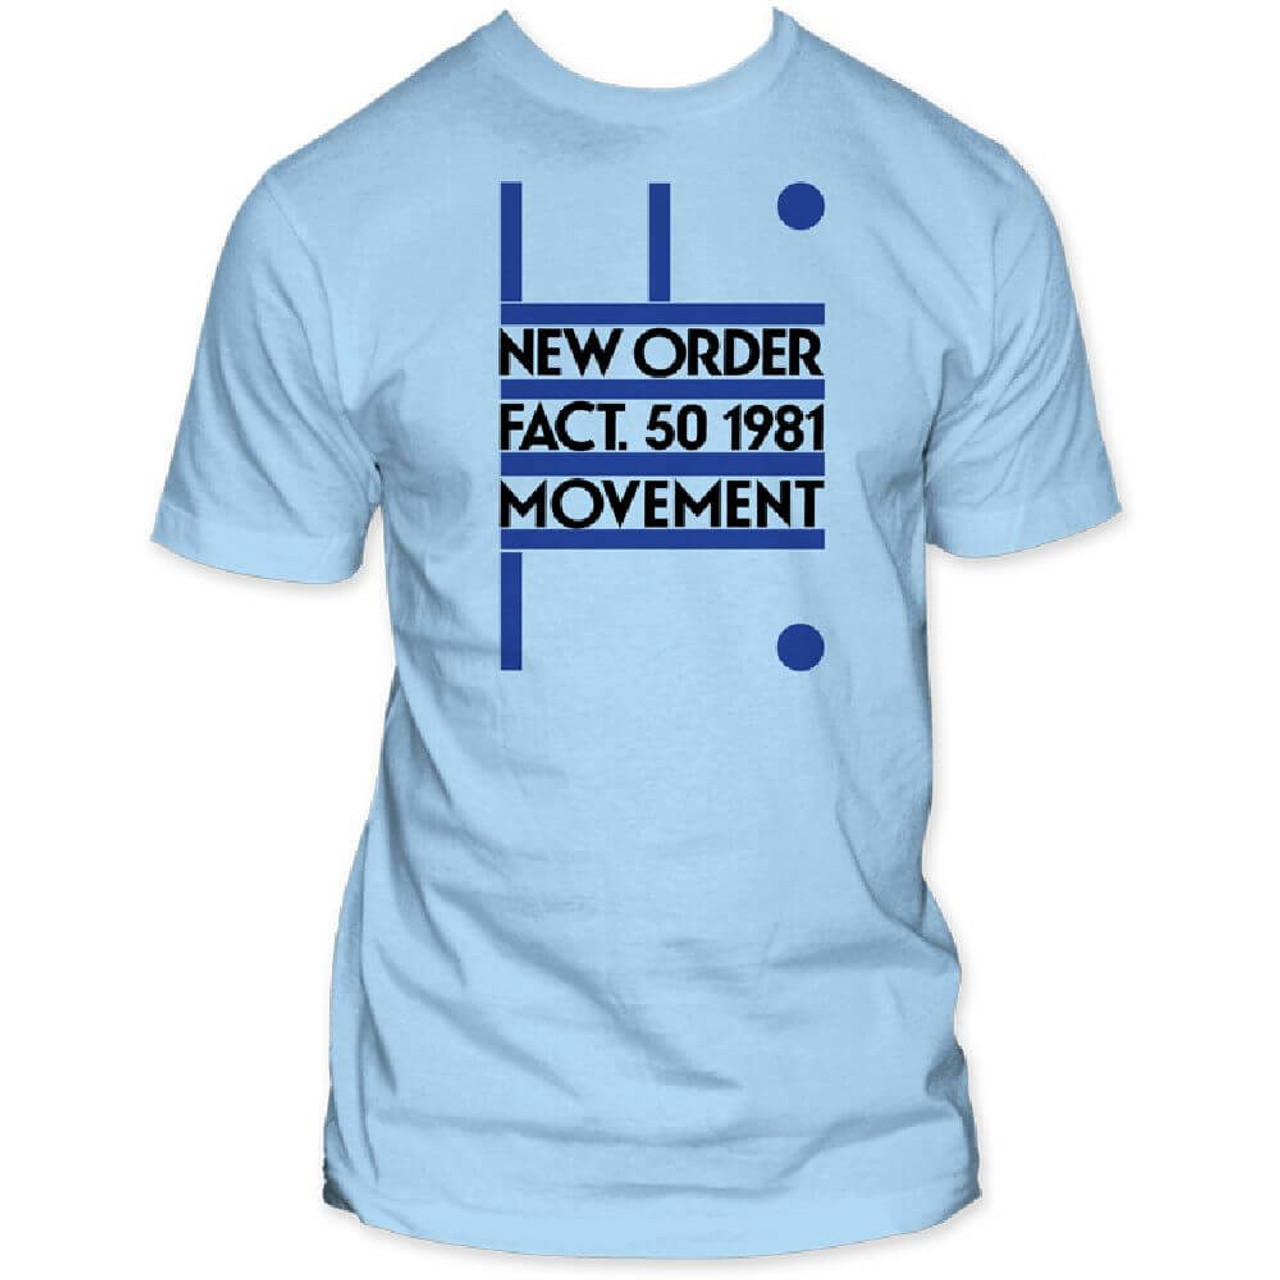 0fd4d7aa New Order T-shirt - Movement Debut Album Cover Artwork. Men's Blue ...